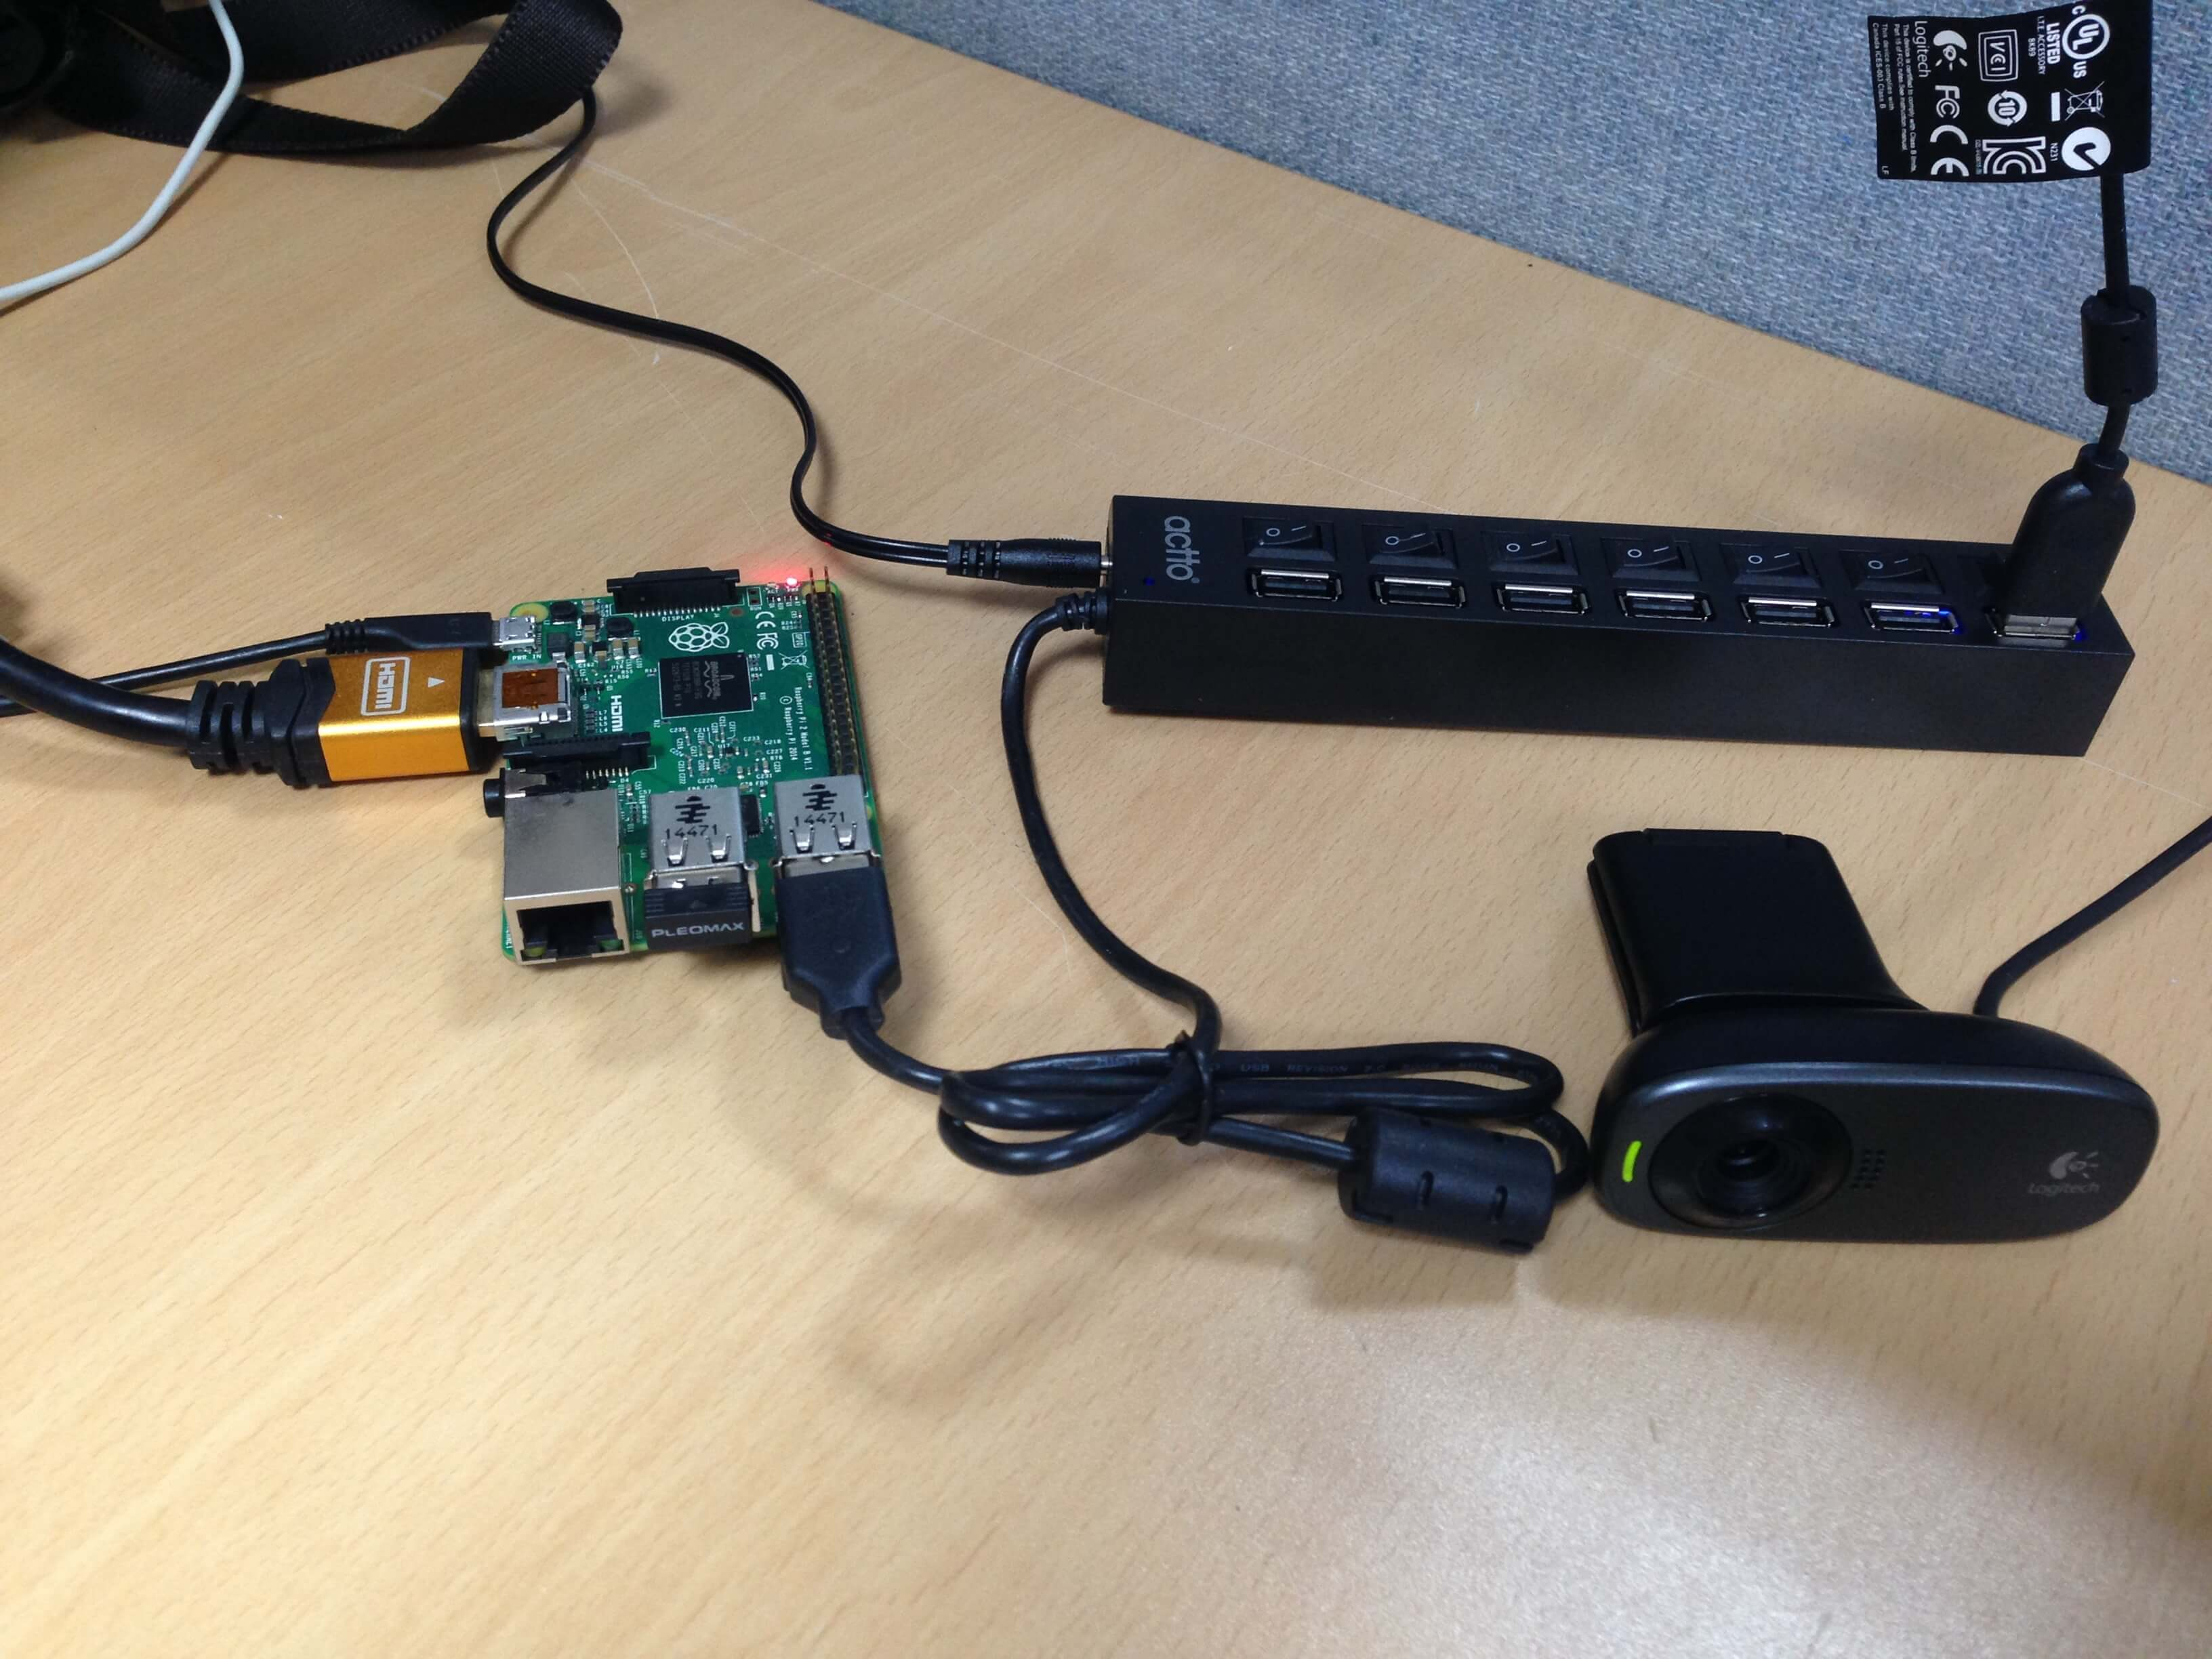 5  From raspberrypi2 to USB webcam - 1) Video streaming